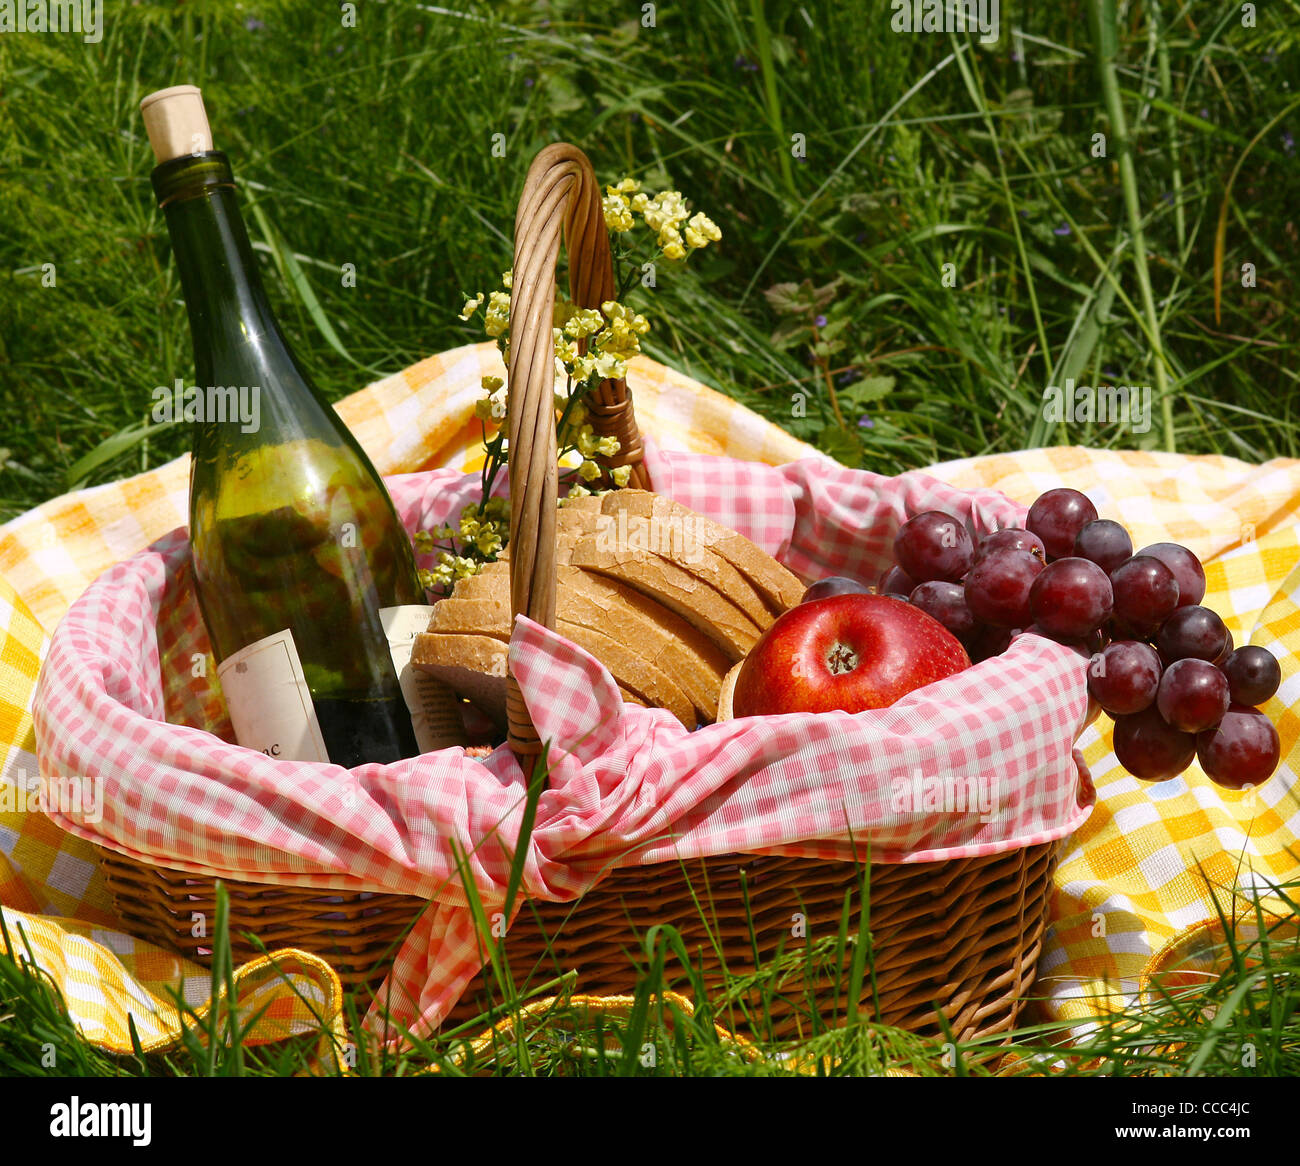 picnic on the grass - Stock Image